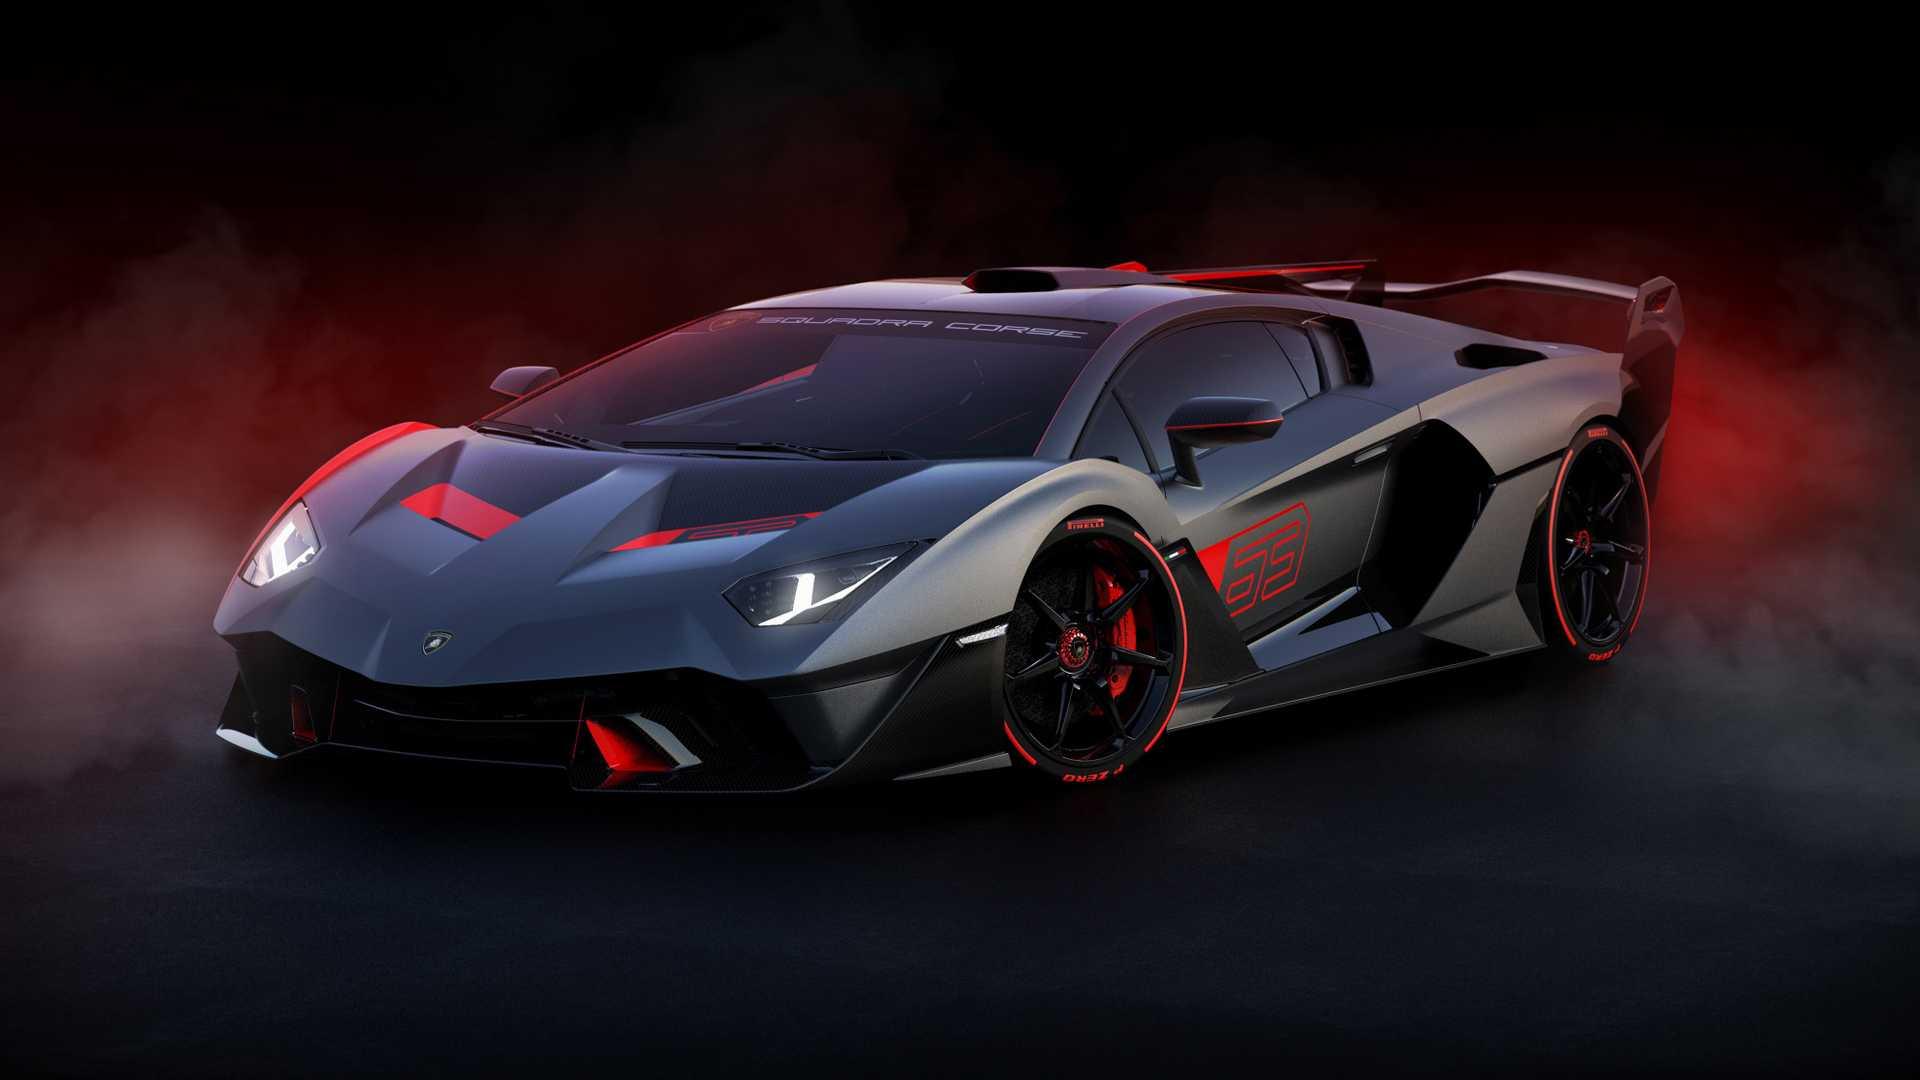 49 All New 2020 Lamborghini Aventador Images